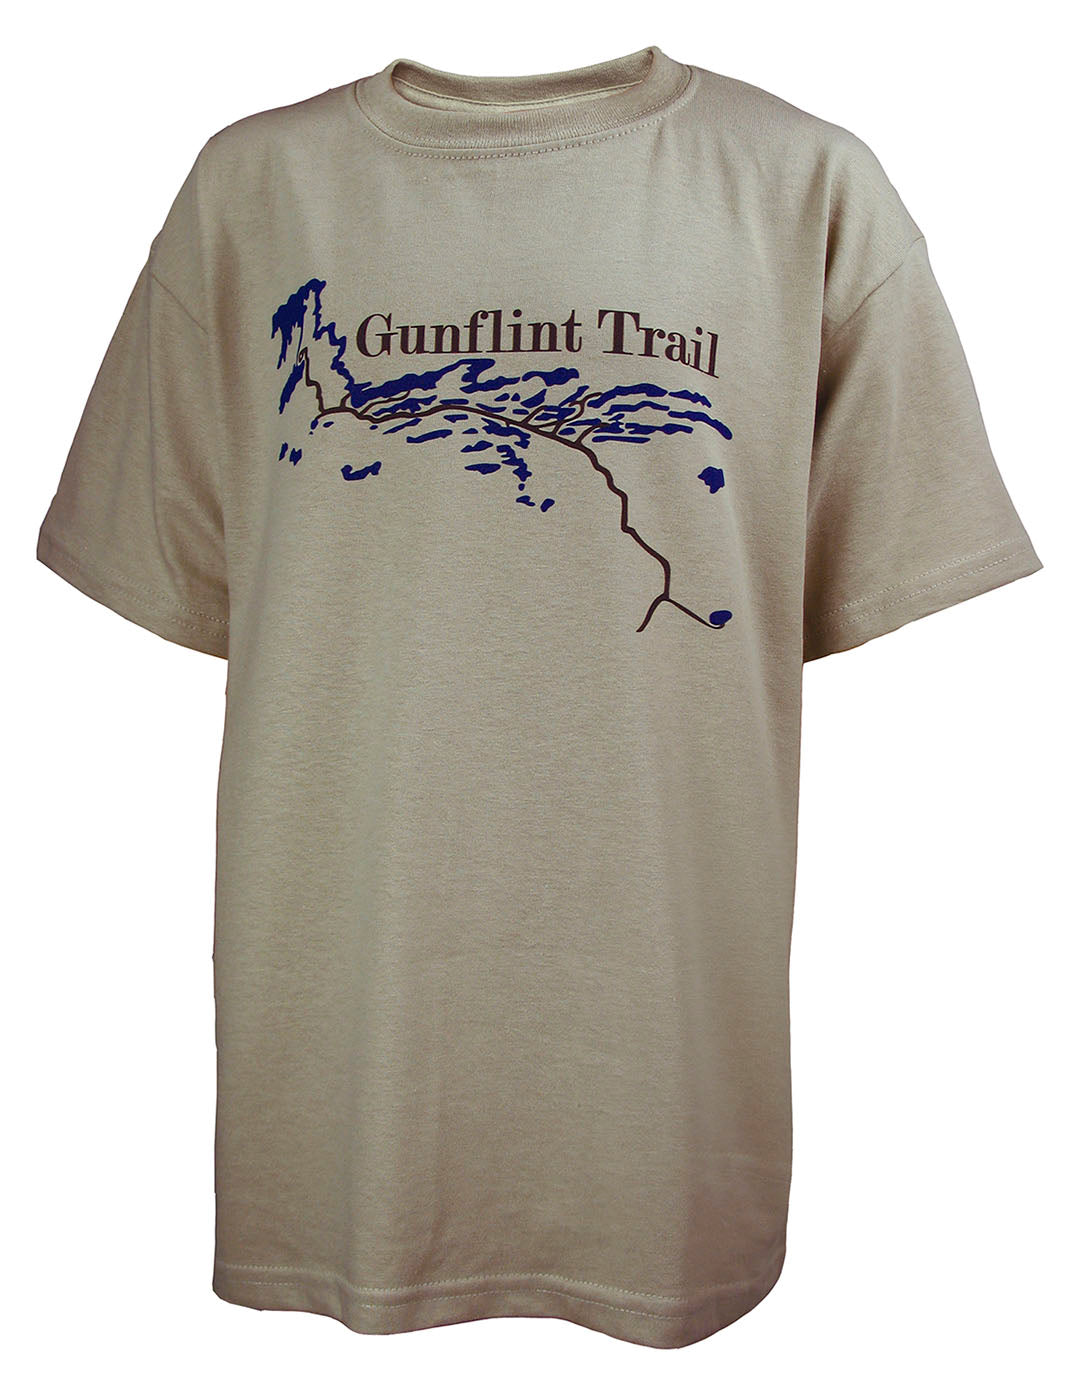 Gunflint Trail T-Shirt